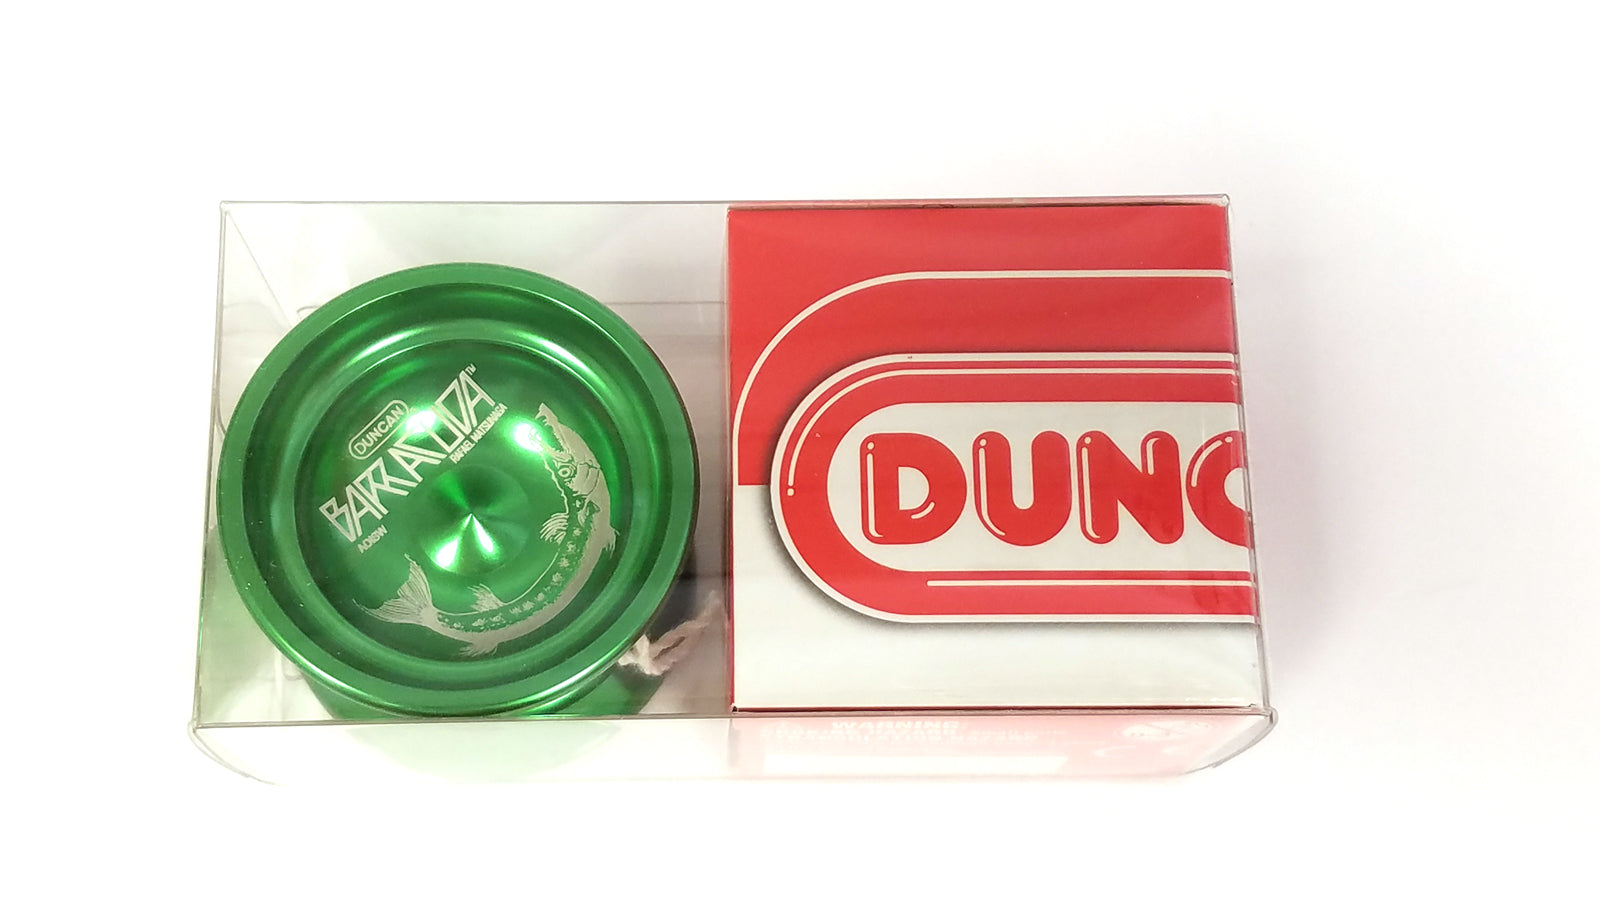 Duncan Barracuda Experienced Professional Unresponsive YoYo - Green